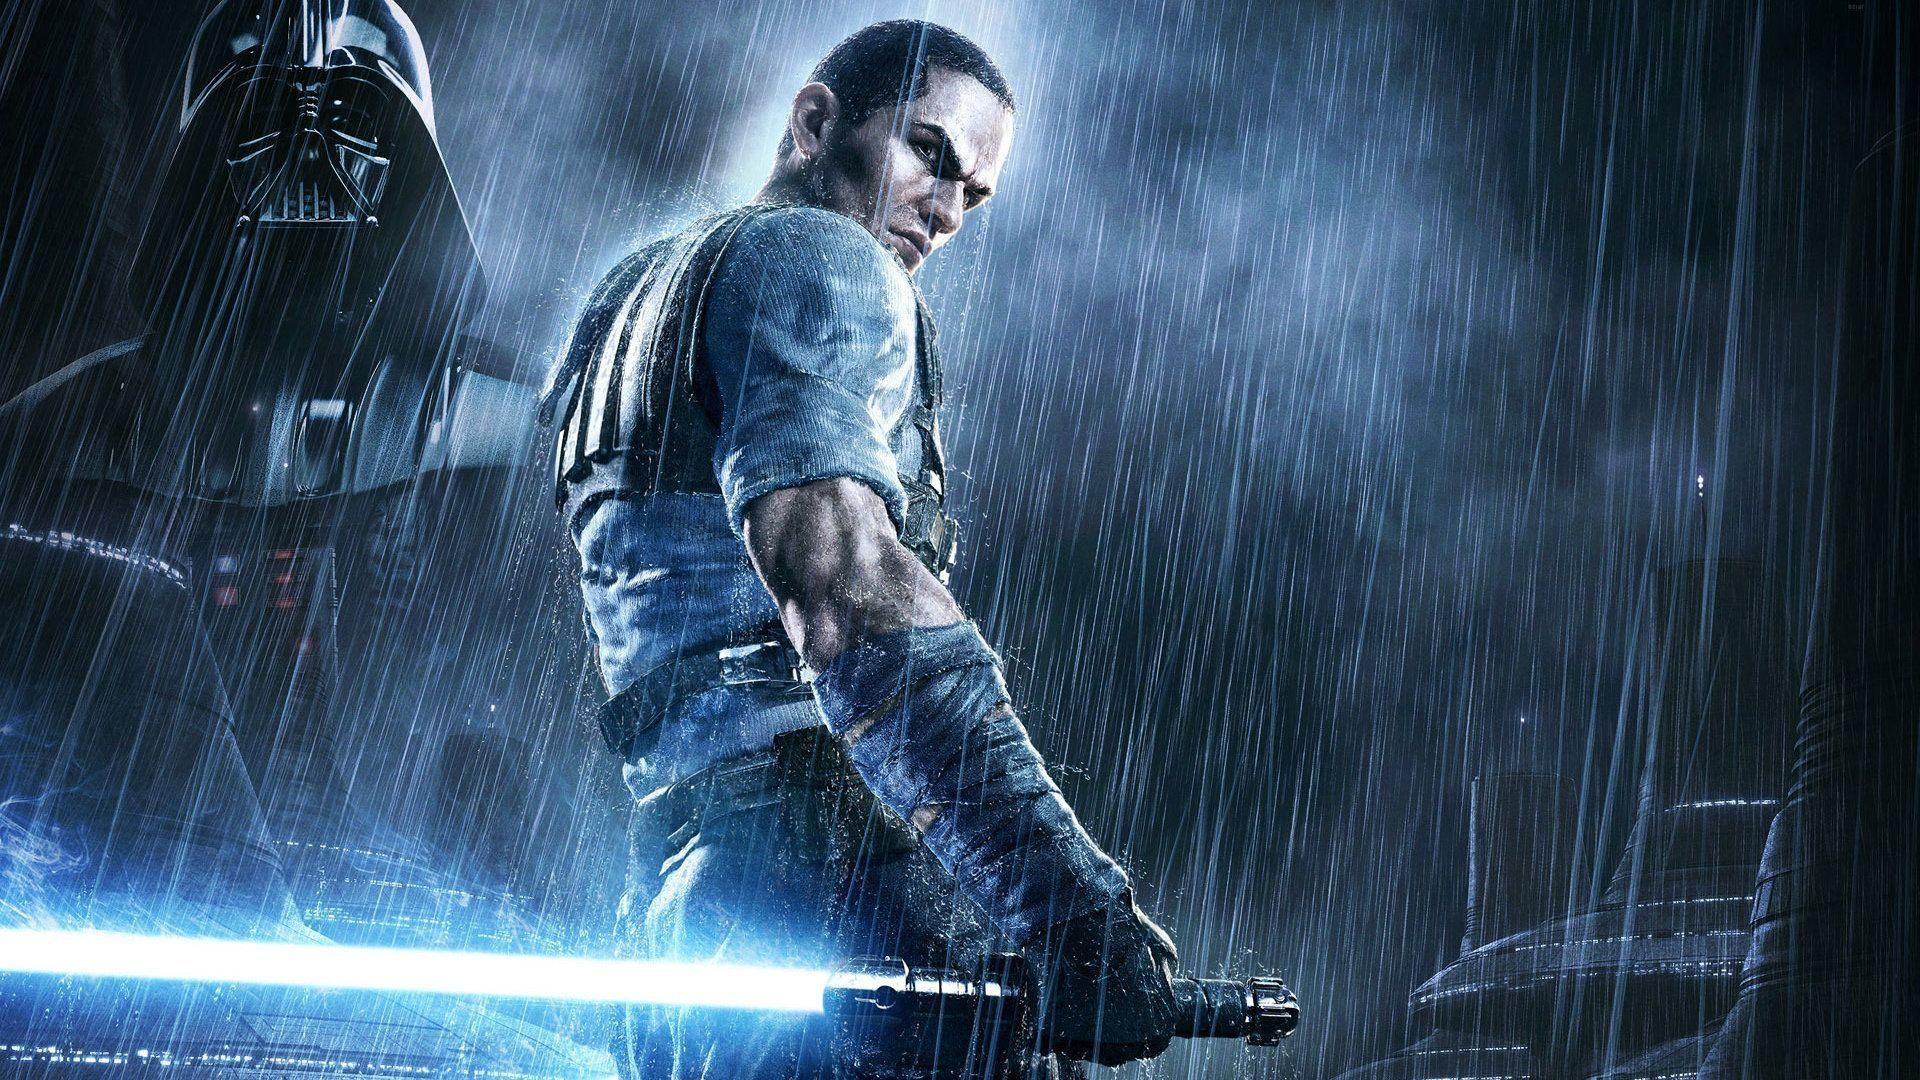 Darth Vader The Force Unleashed Wallpaper Games Hd 1920 1080 Force Unleashed 2 Wallpapers 33 Wallpapers Adorable Wallpapers